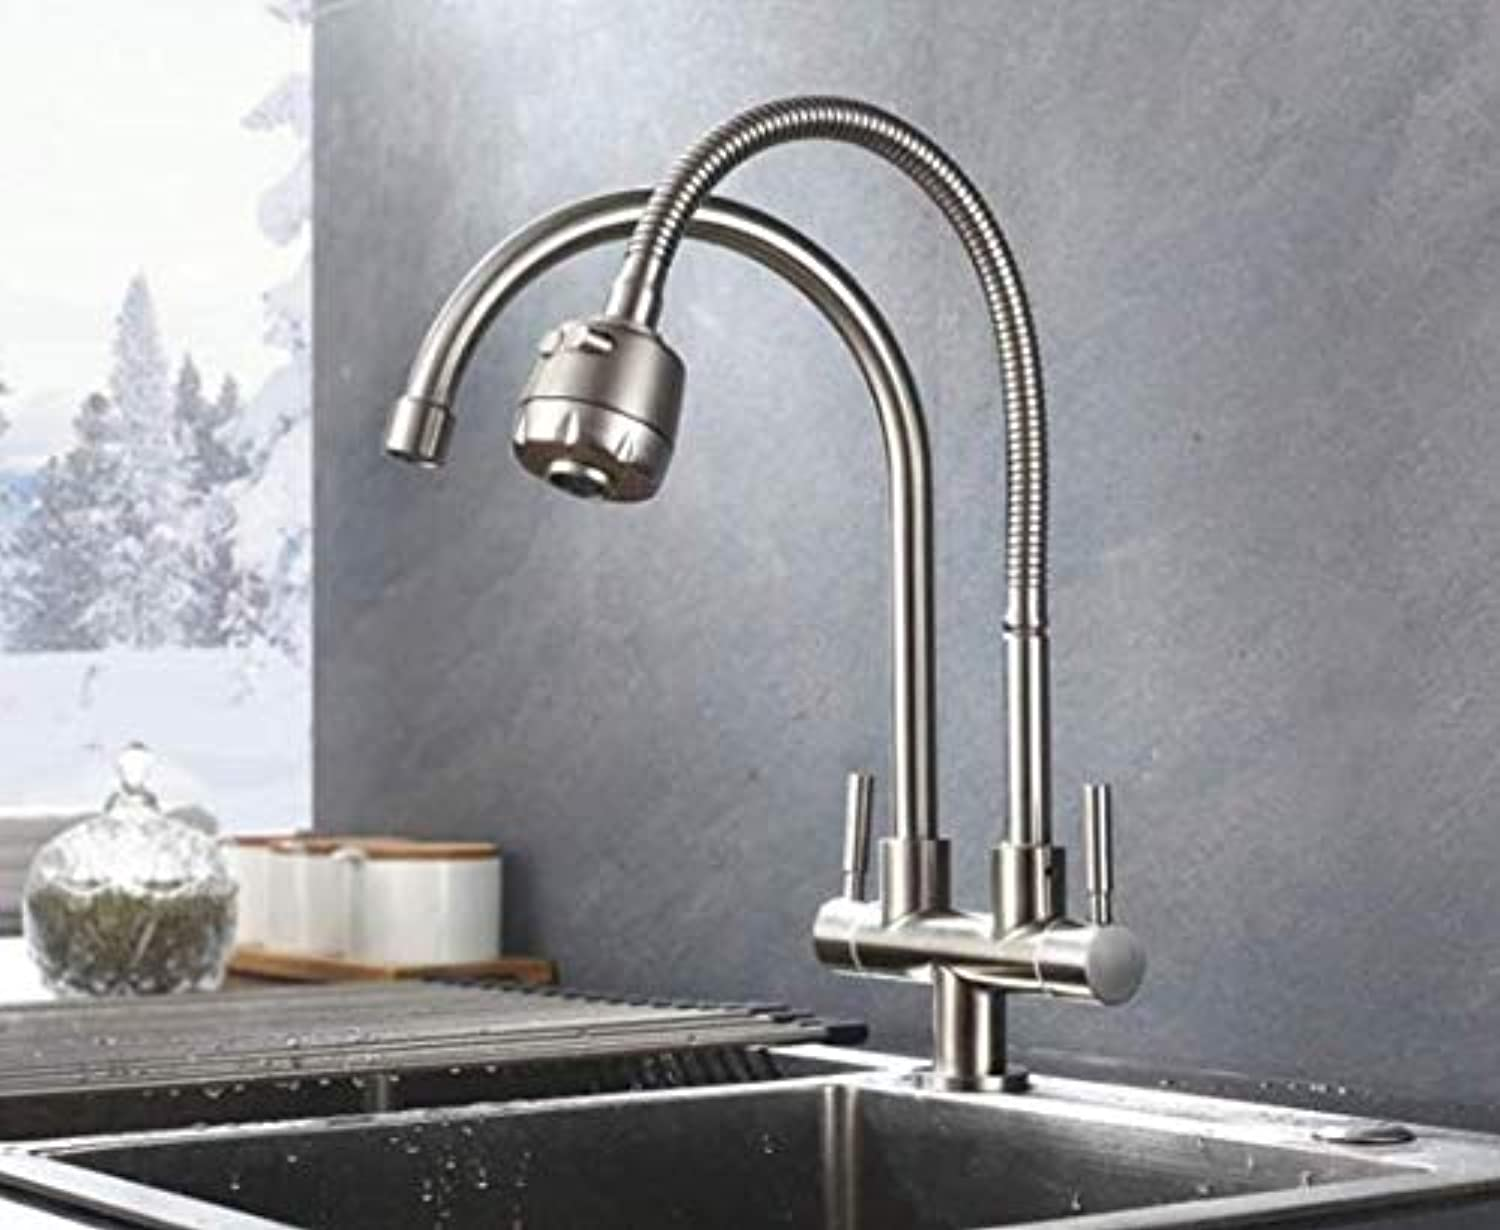 Kitchen fauct Reversible redary 304 Sink Faucet Single Cold Kitchen Faucet Twin Dual Cooling and Heating Basin (color   -, Size   -)